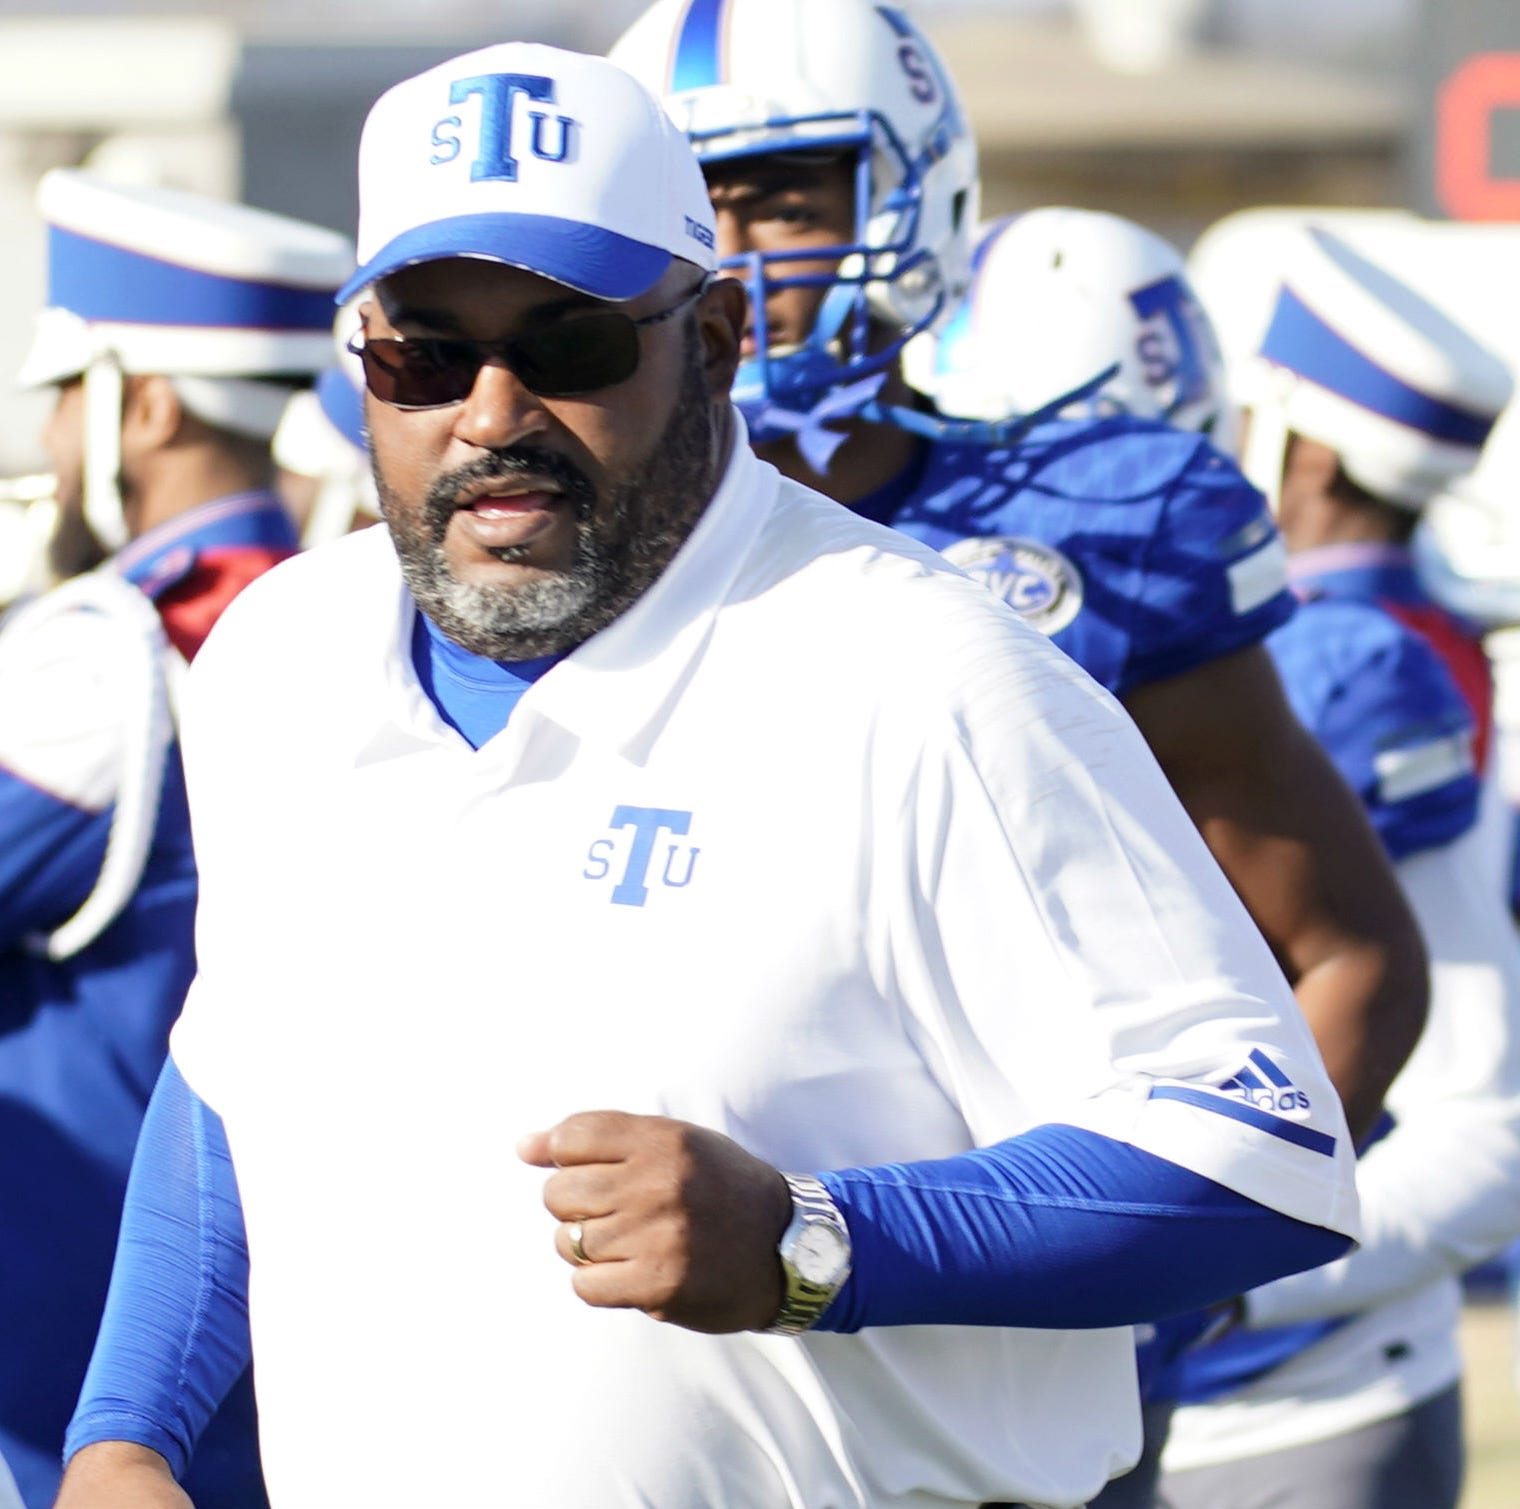 Tennessee State football coach Rod Reed's future in limbo after win over UT-Martin in OT